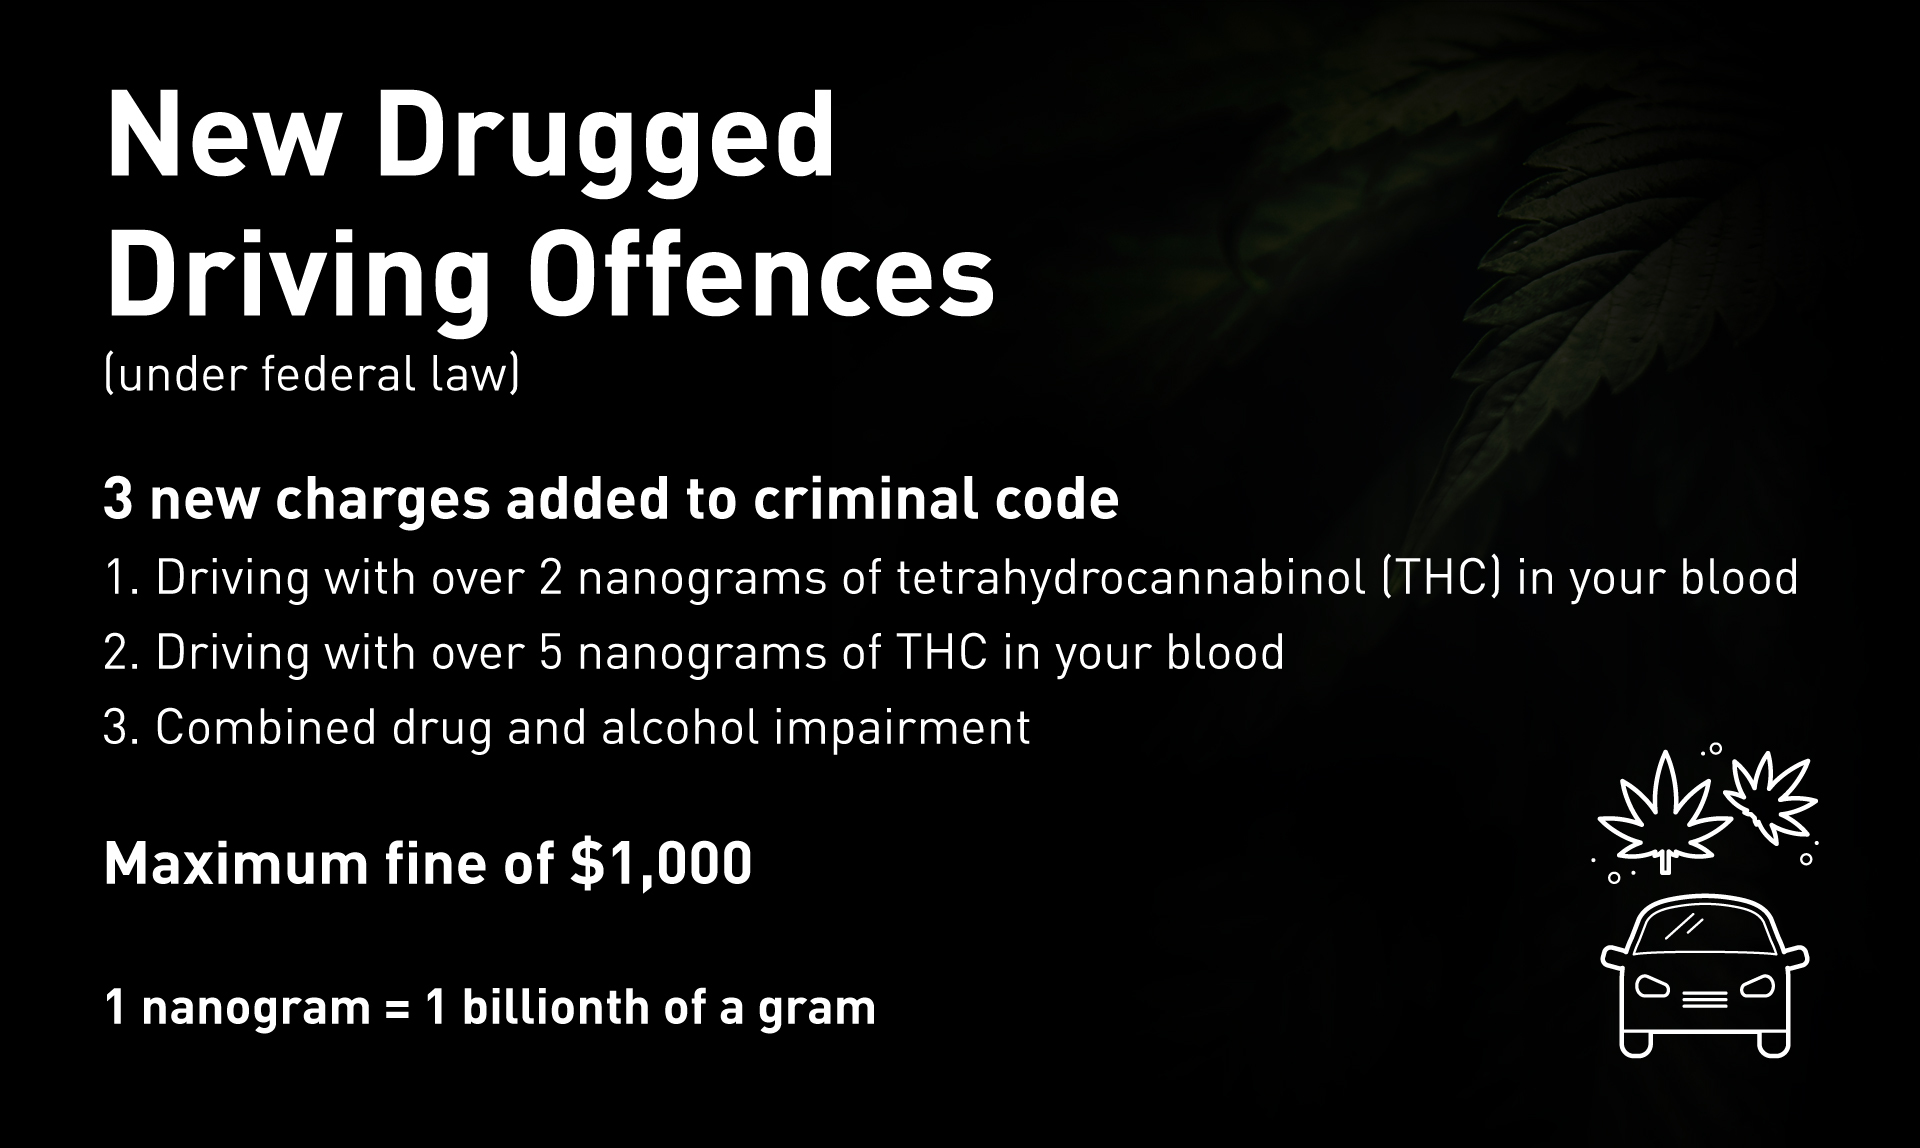 Driving under the influence of cannabis could net you a maximum federal fine of $1,000.